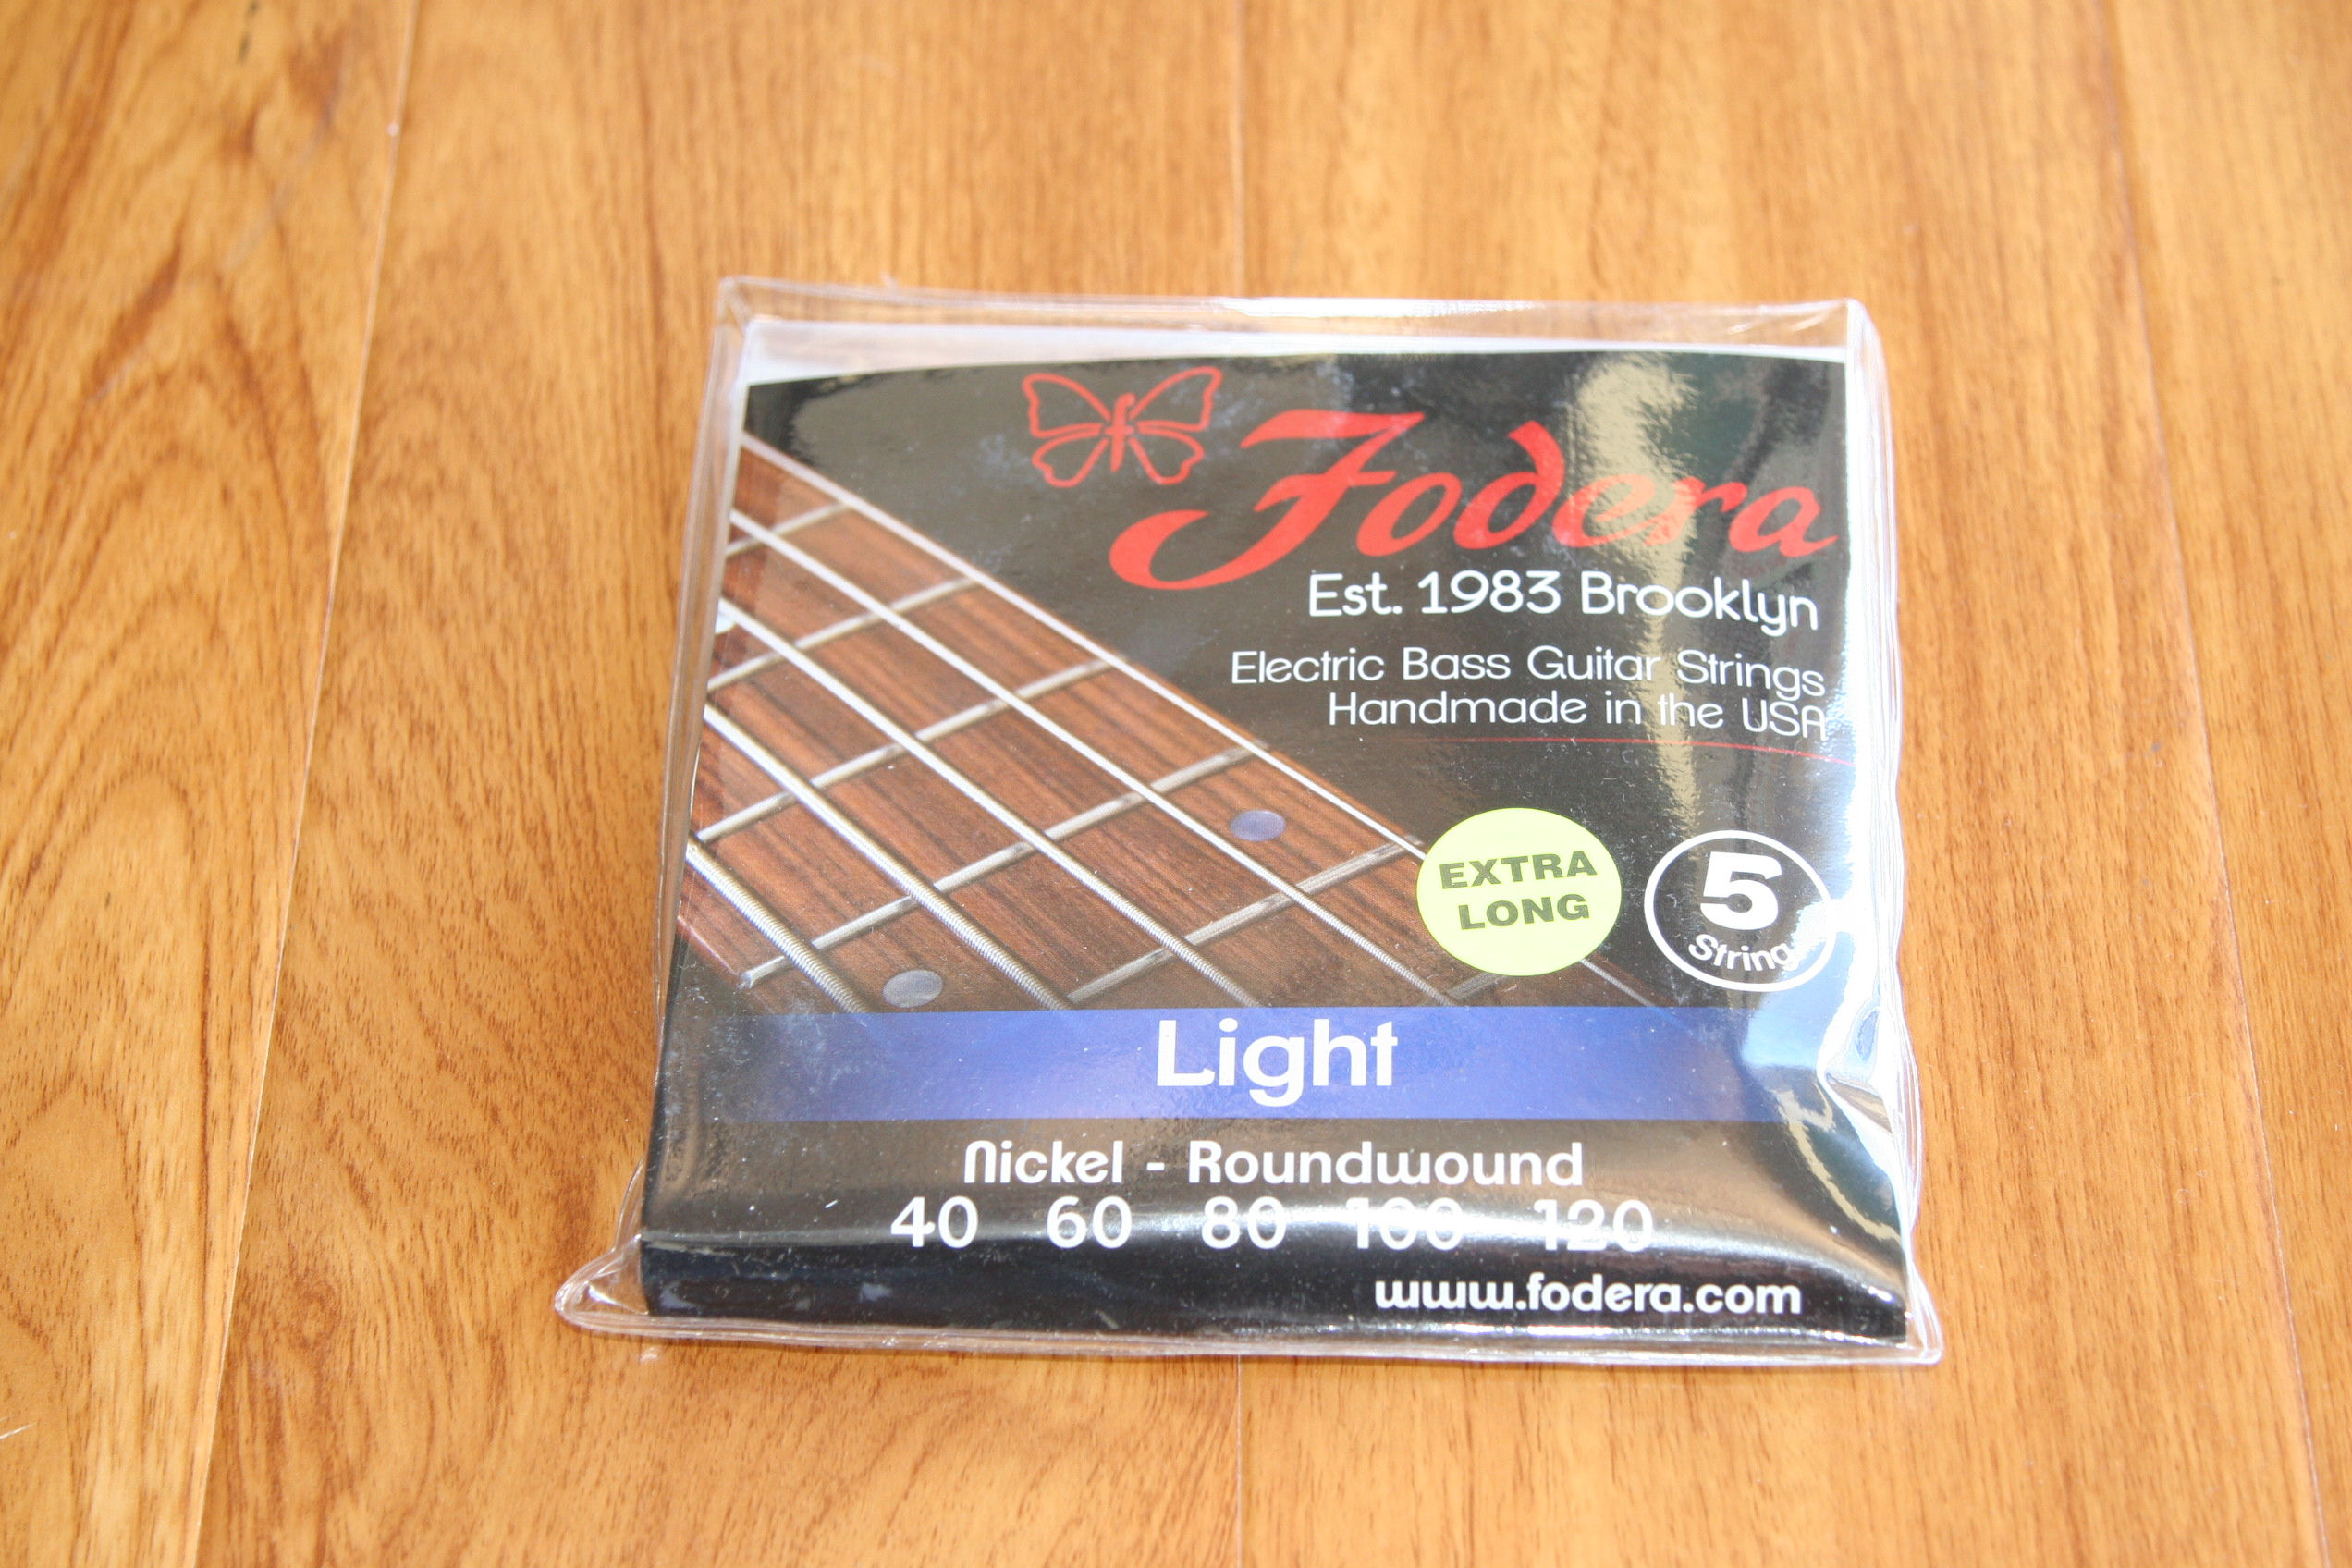 Fodera Bass Strings- 5 String Light Nickel Extra Long